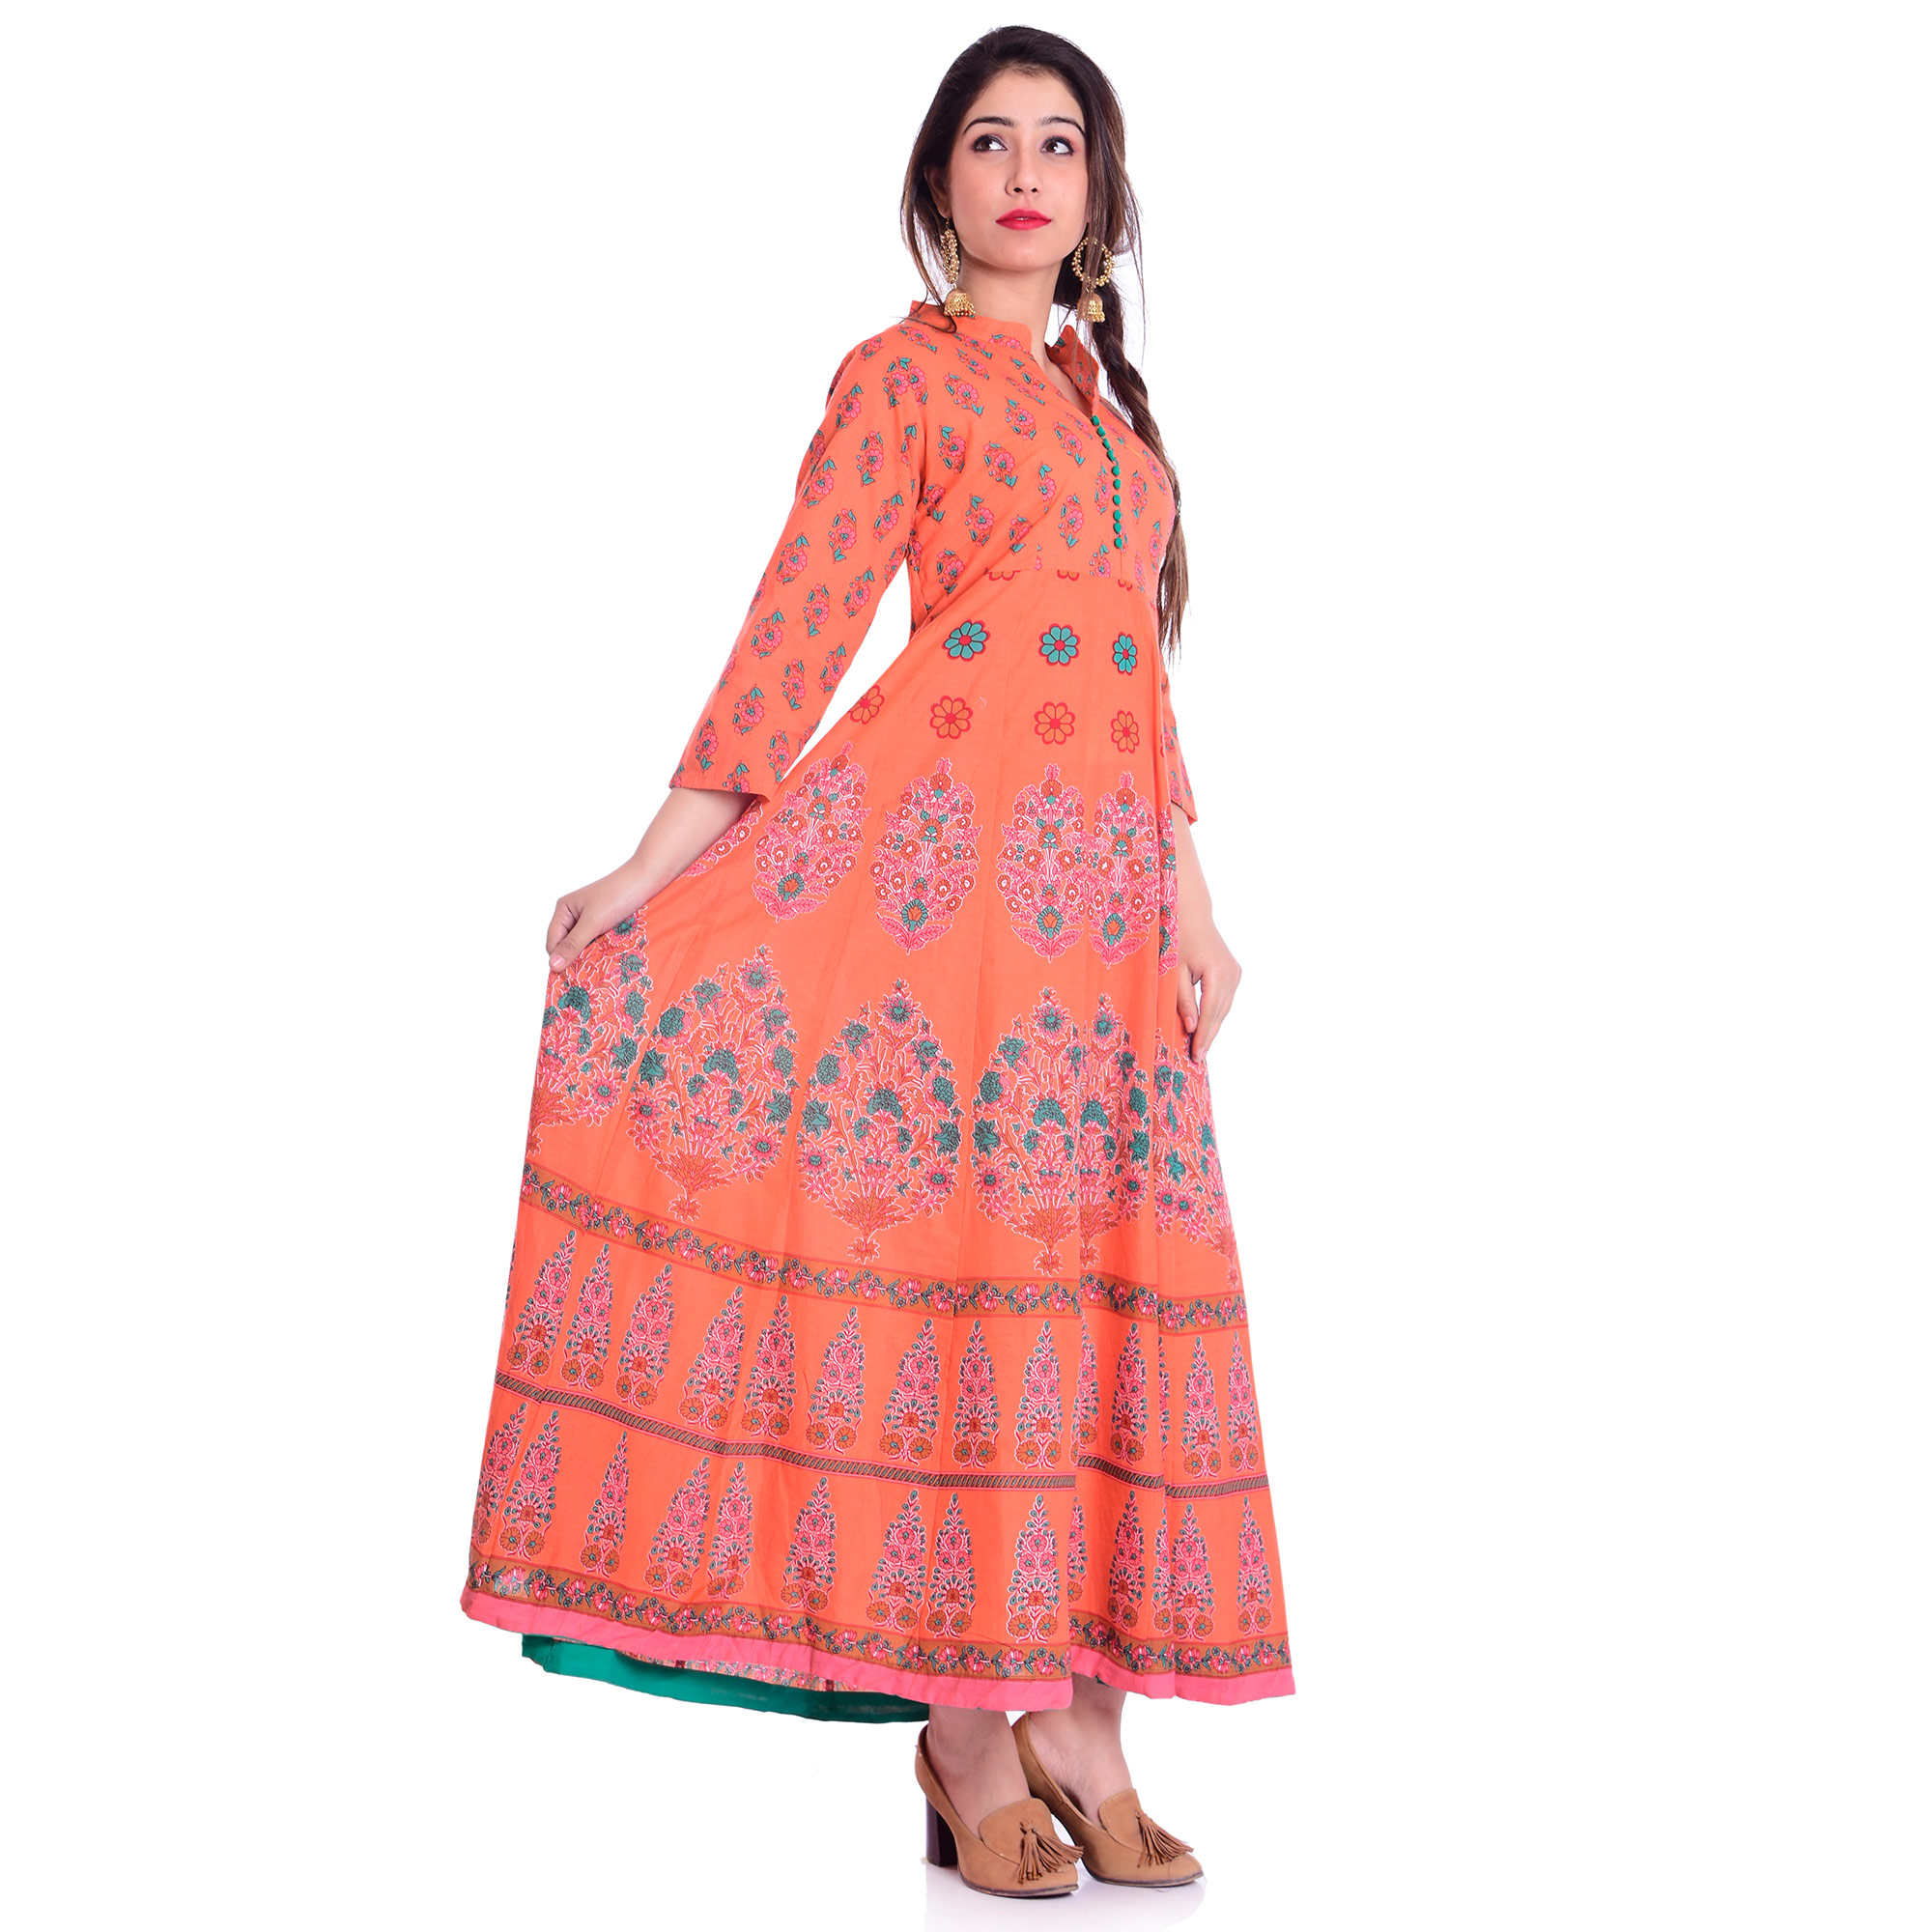 Pooja Fashion - Pink Colored Casual Wear Printed Ankle Length Cotton Kurti